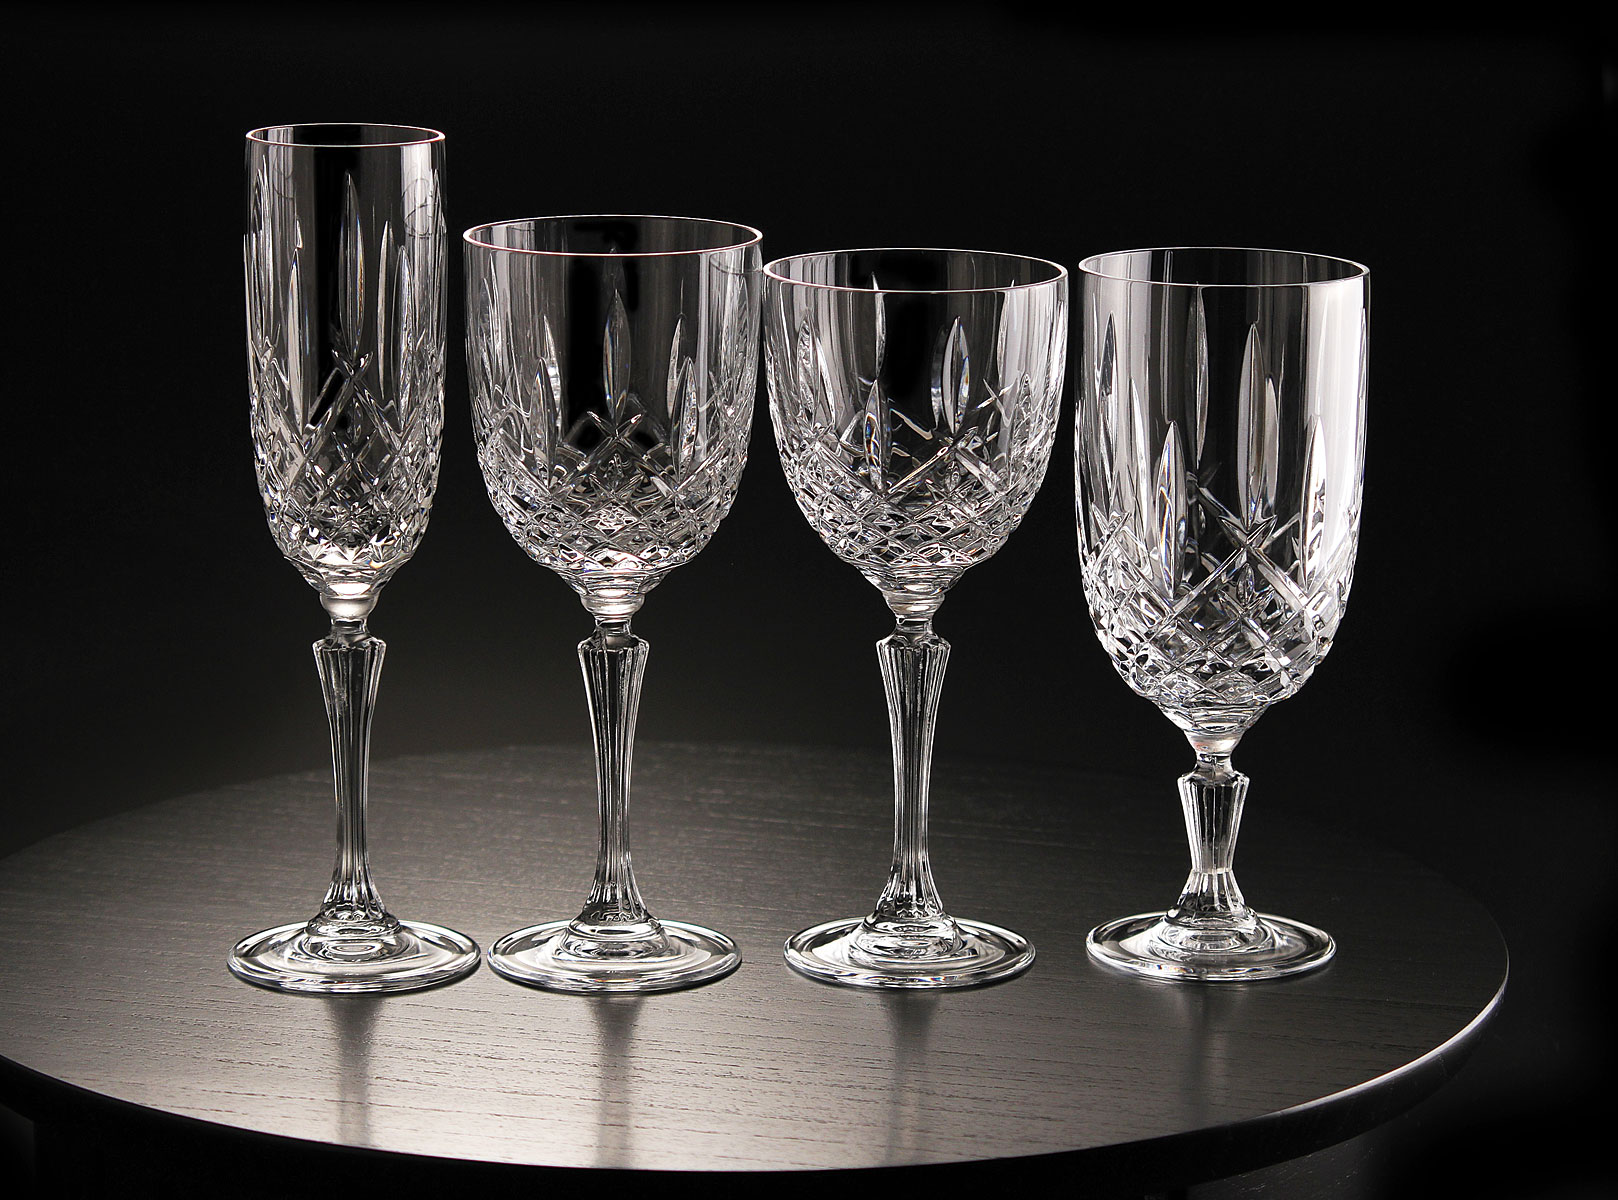 Classy Waterford Crystal Patterns For Dining Sets Ideas With Waterford Crystal Glass Patterns